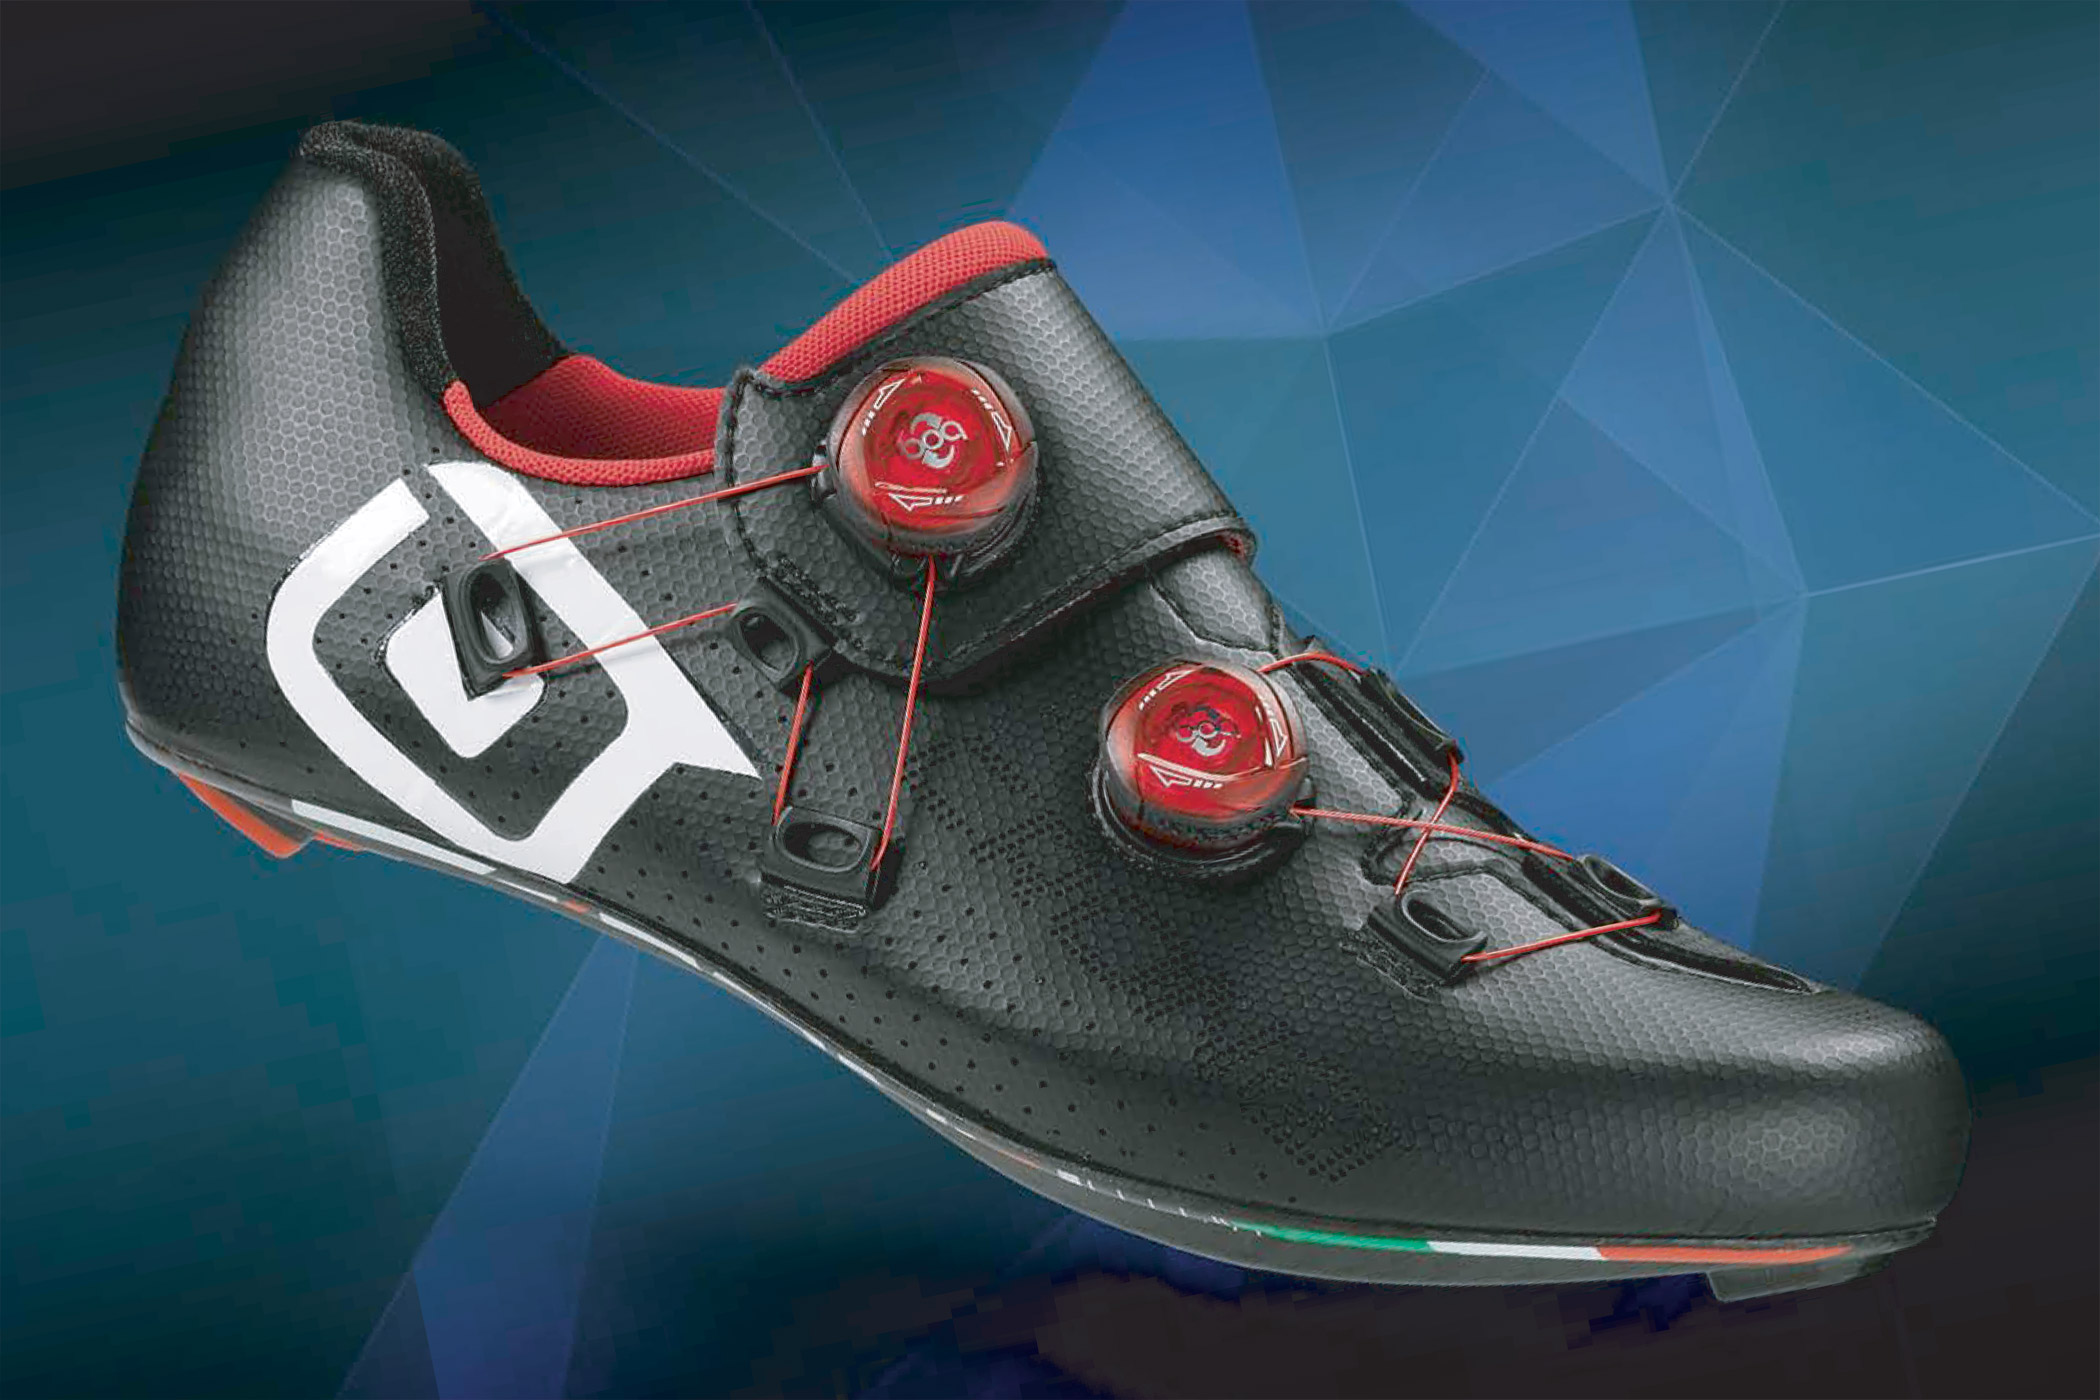 Cycling Shoe Fit Toe Tight